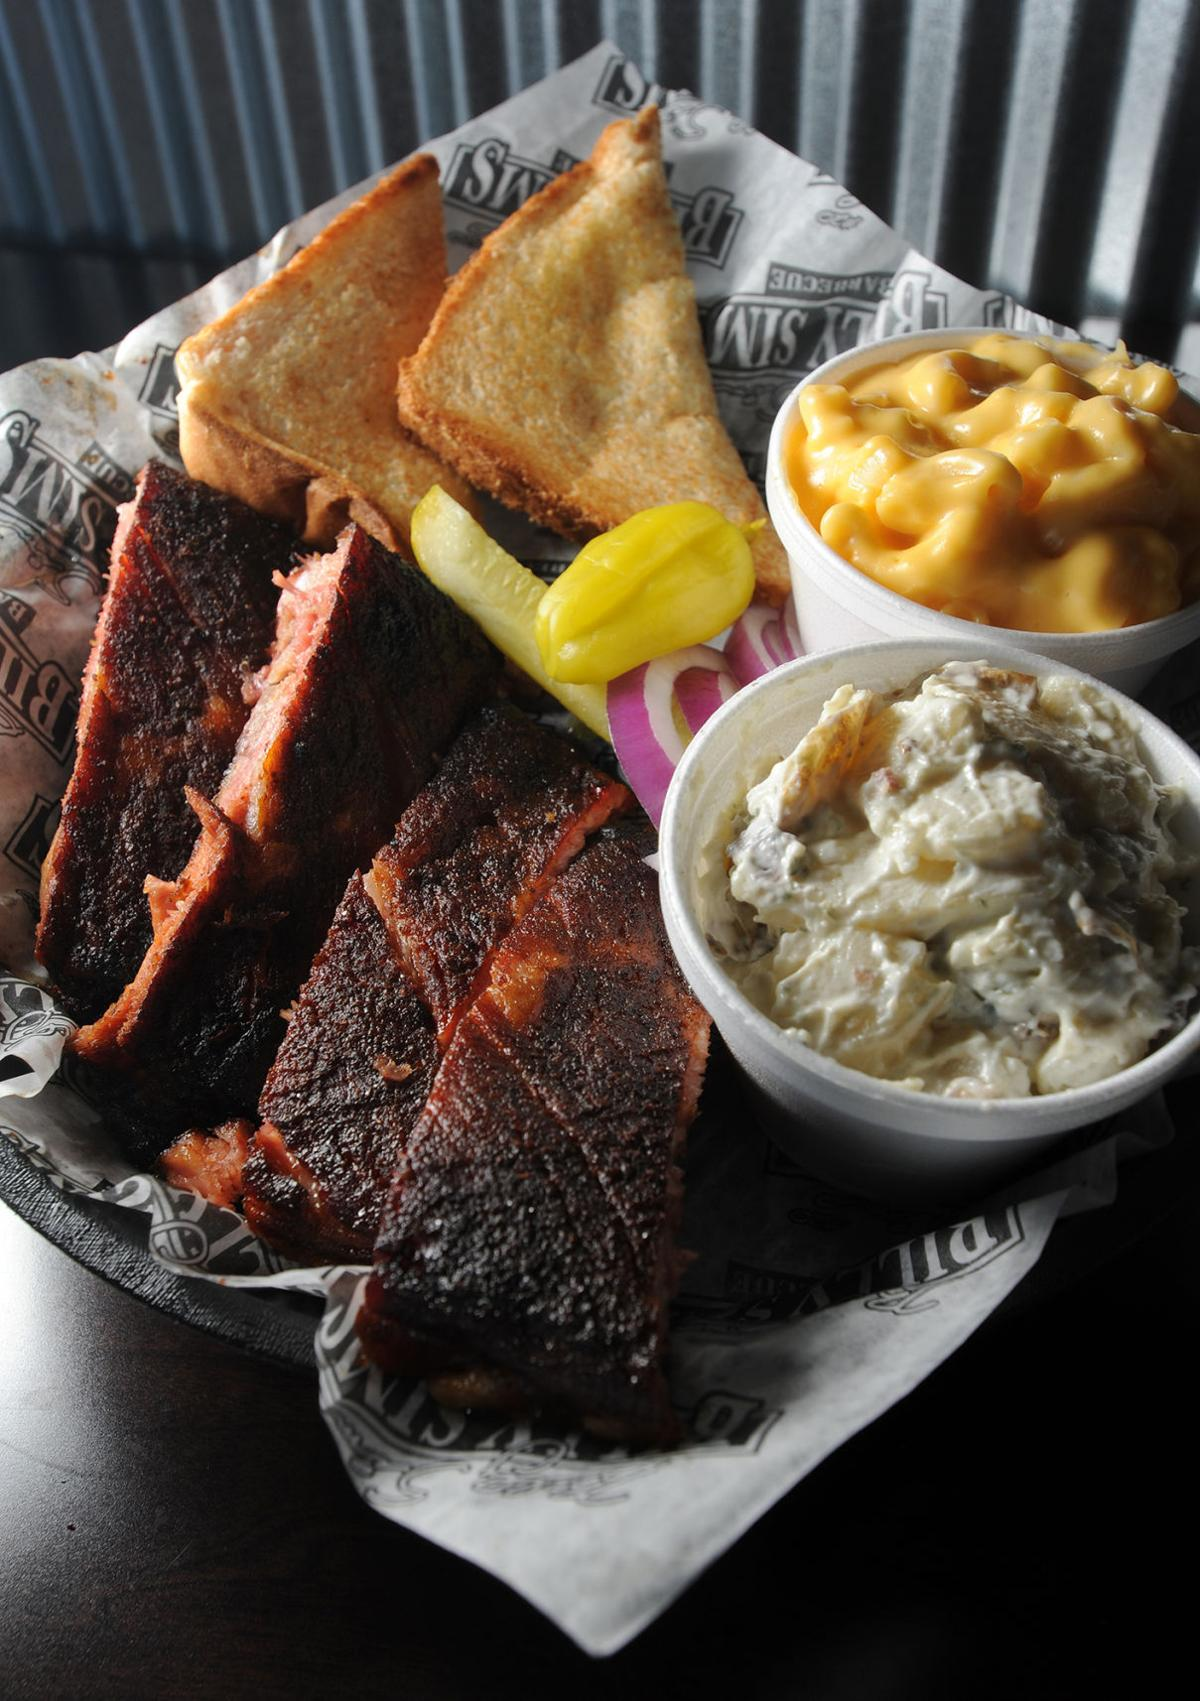 Dining review: Barbecue joint in Colorado Springs scores big with diners